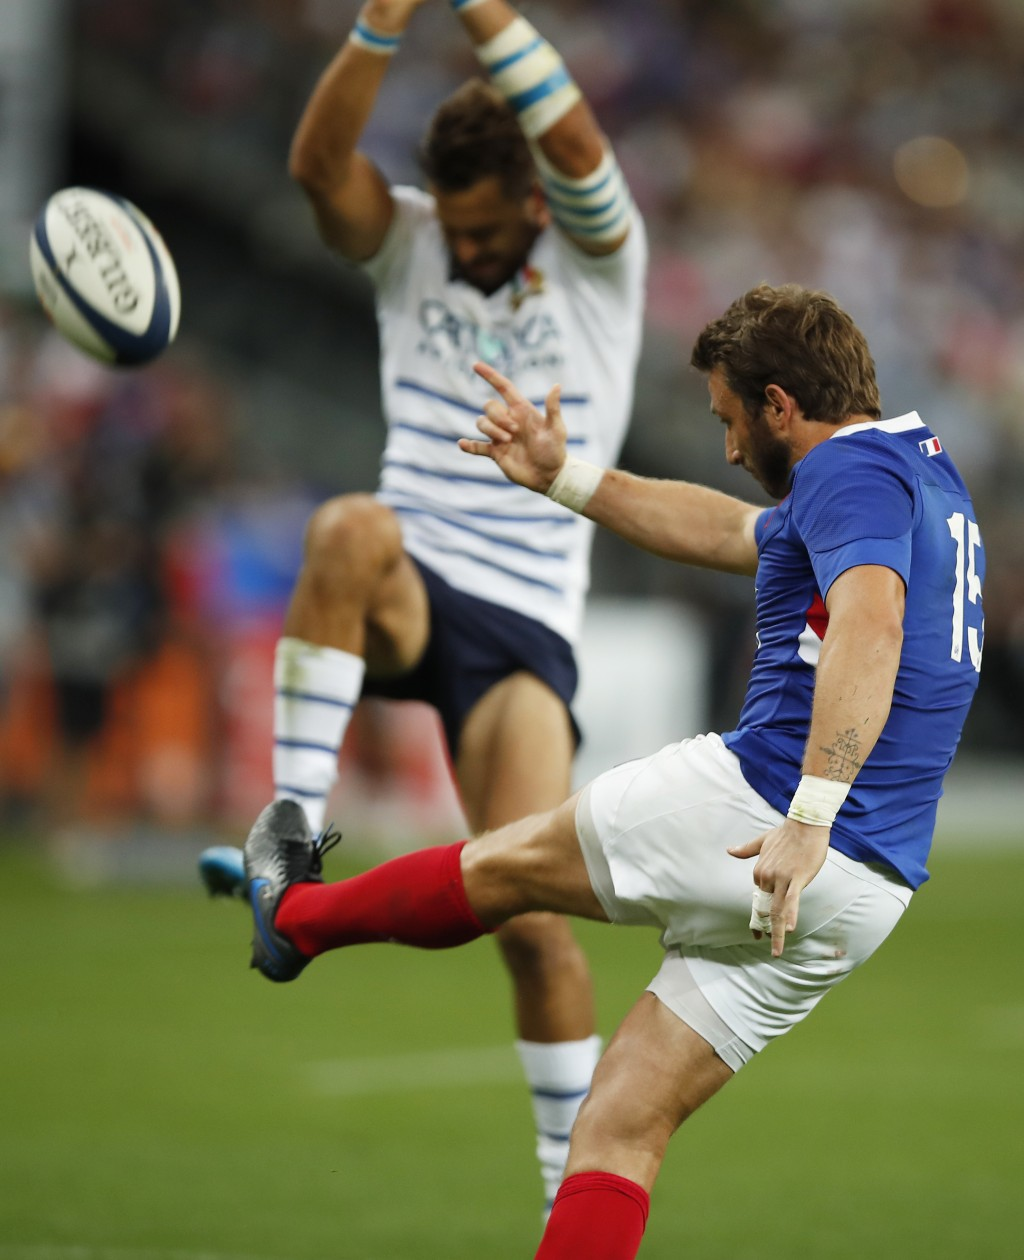 France's Maxime Medard kicks the ball during a friendly rugby test match between France and Italy at Stade de France in Saint Denis, north of Paris, F